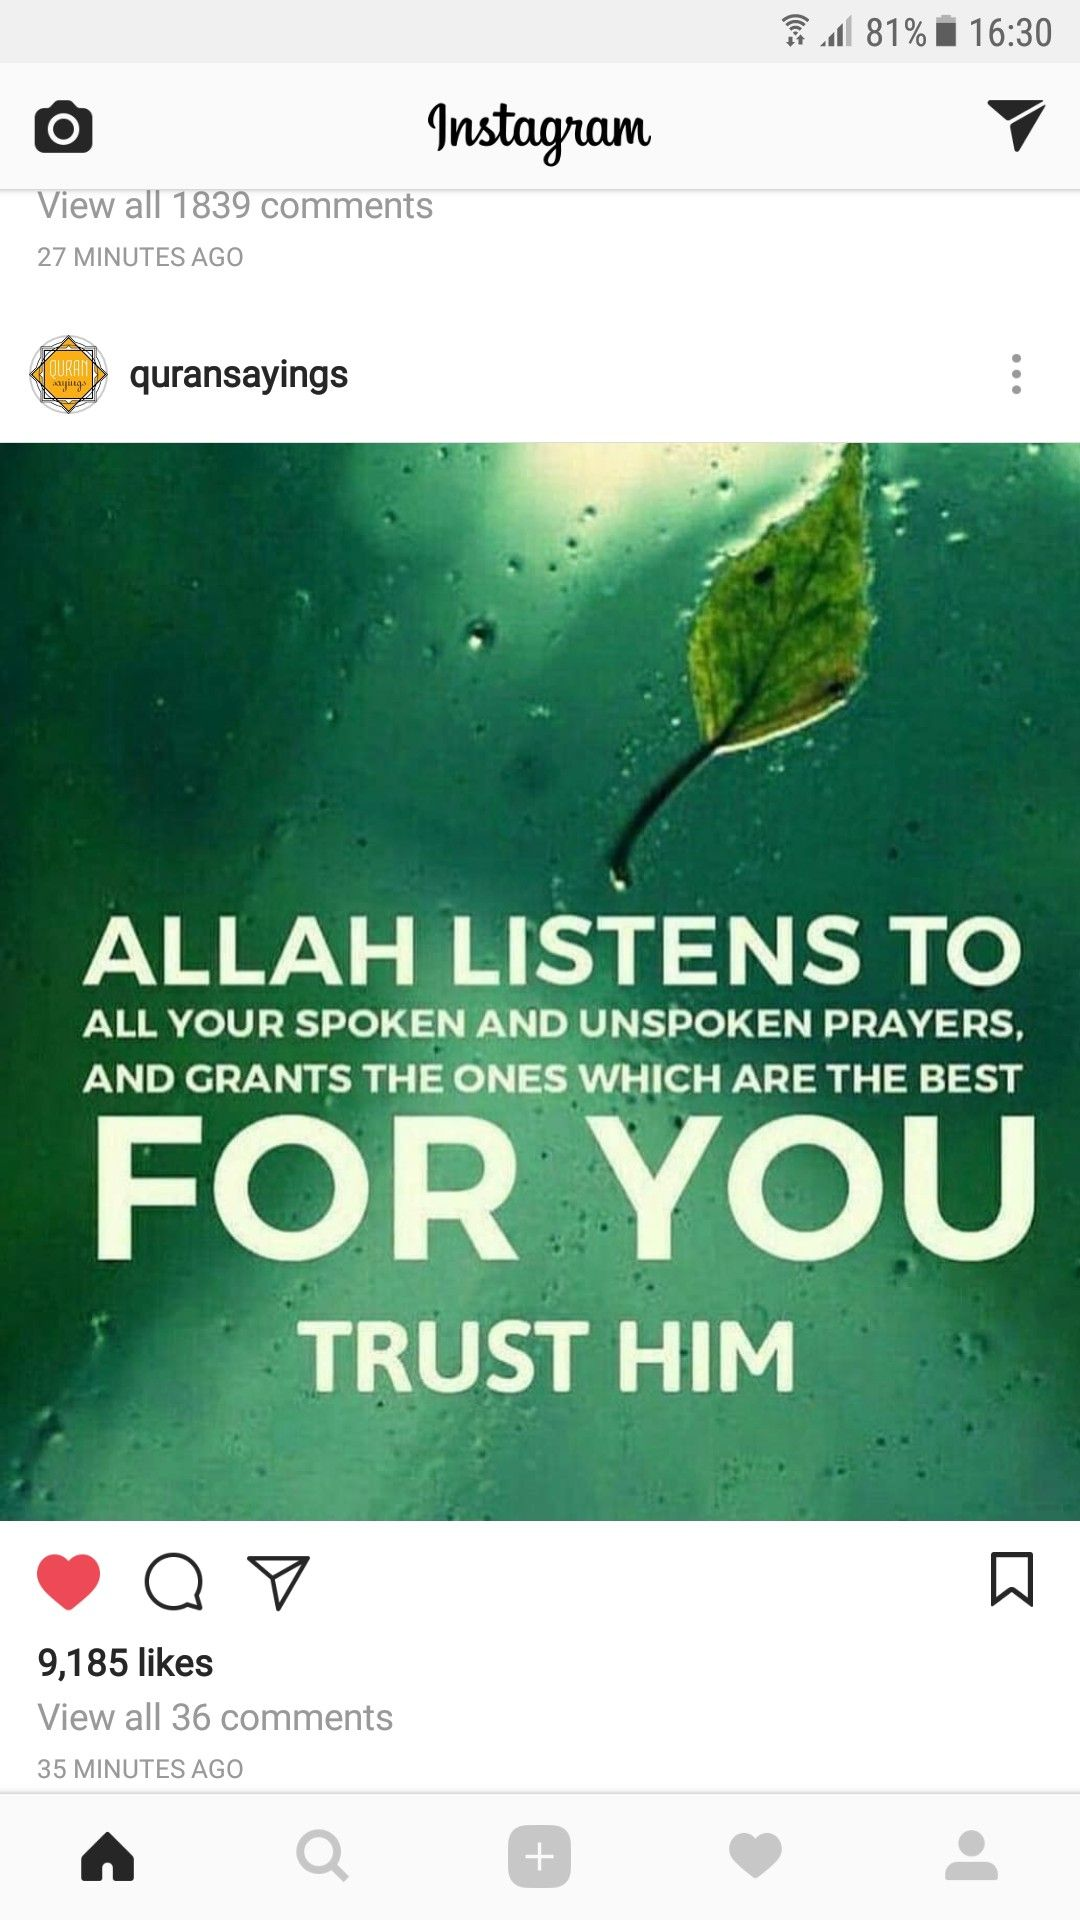 Pin by staar on islam pinterest islam allah and islamic quran quotes quran verses islamic quotes qoutes alhamdulillah allah wise words temple religion altavistaventures Image collections